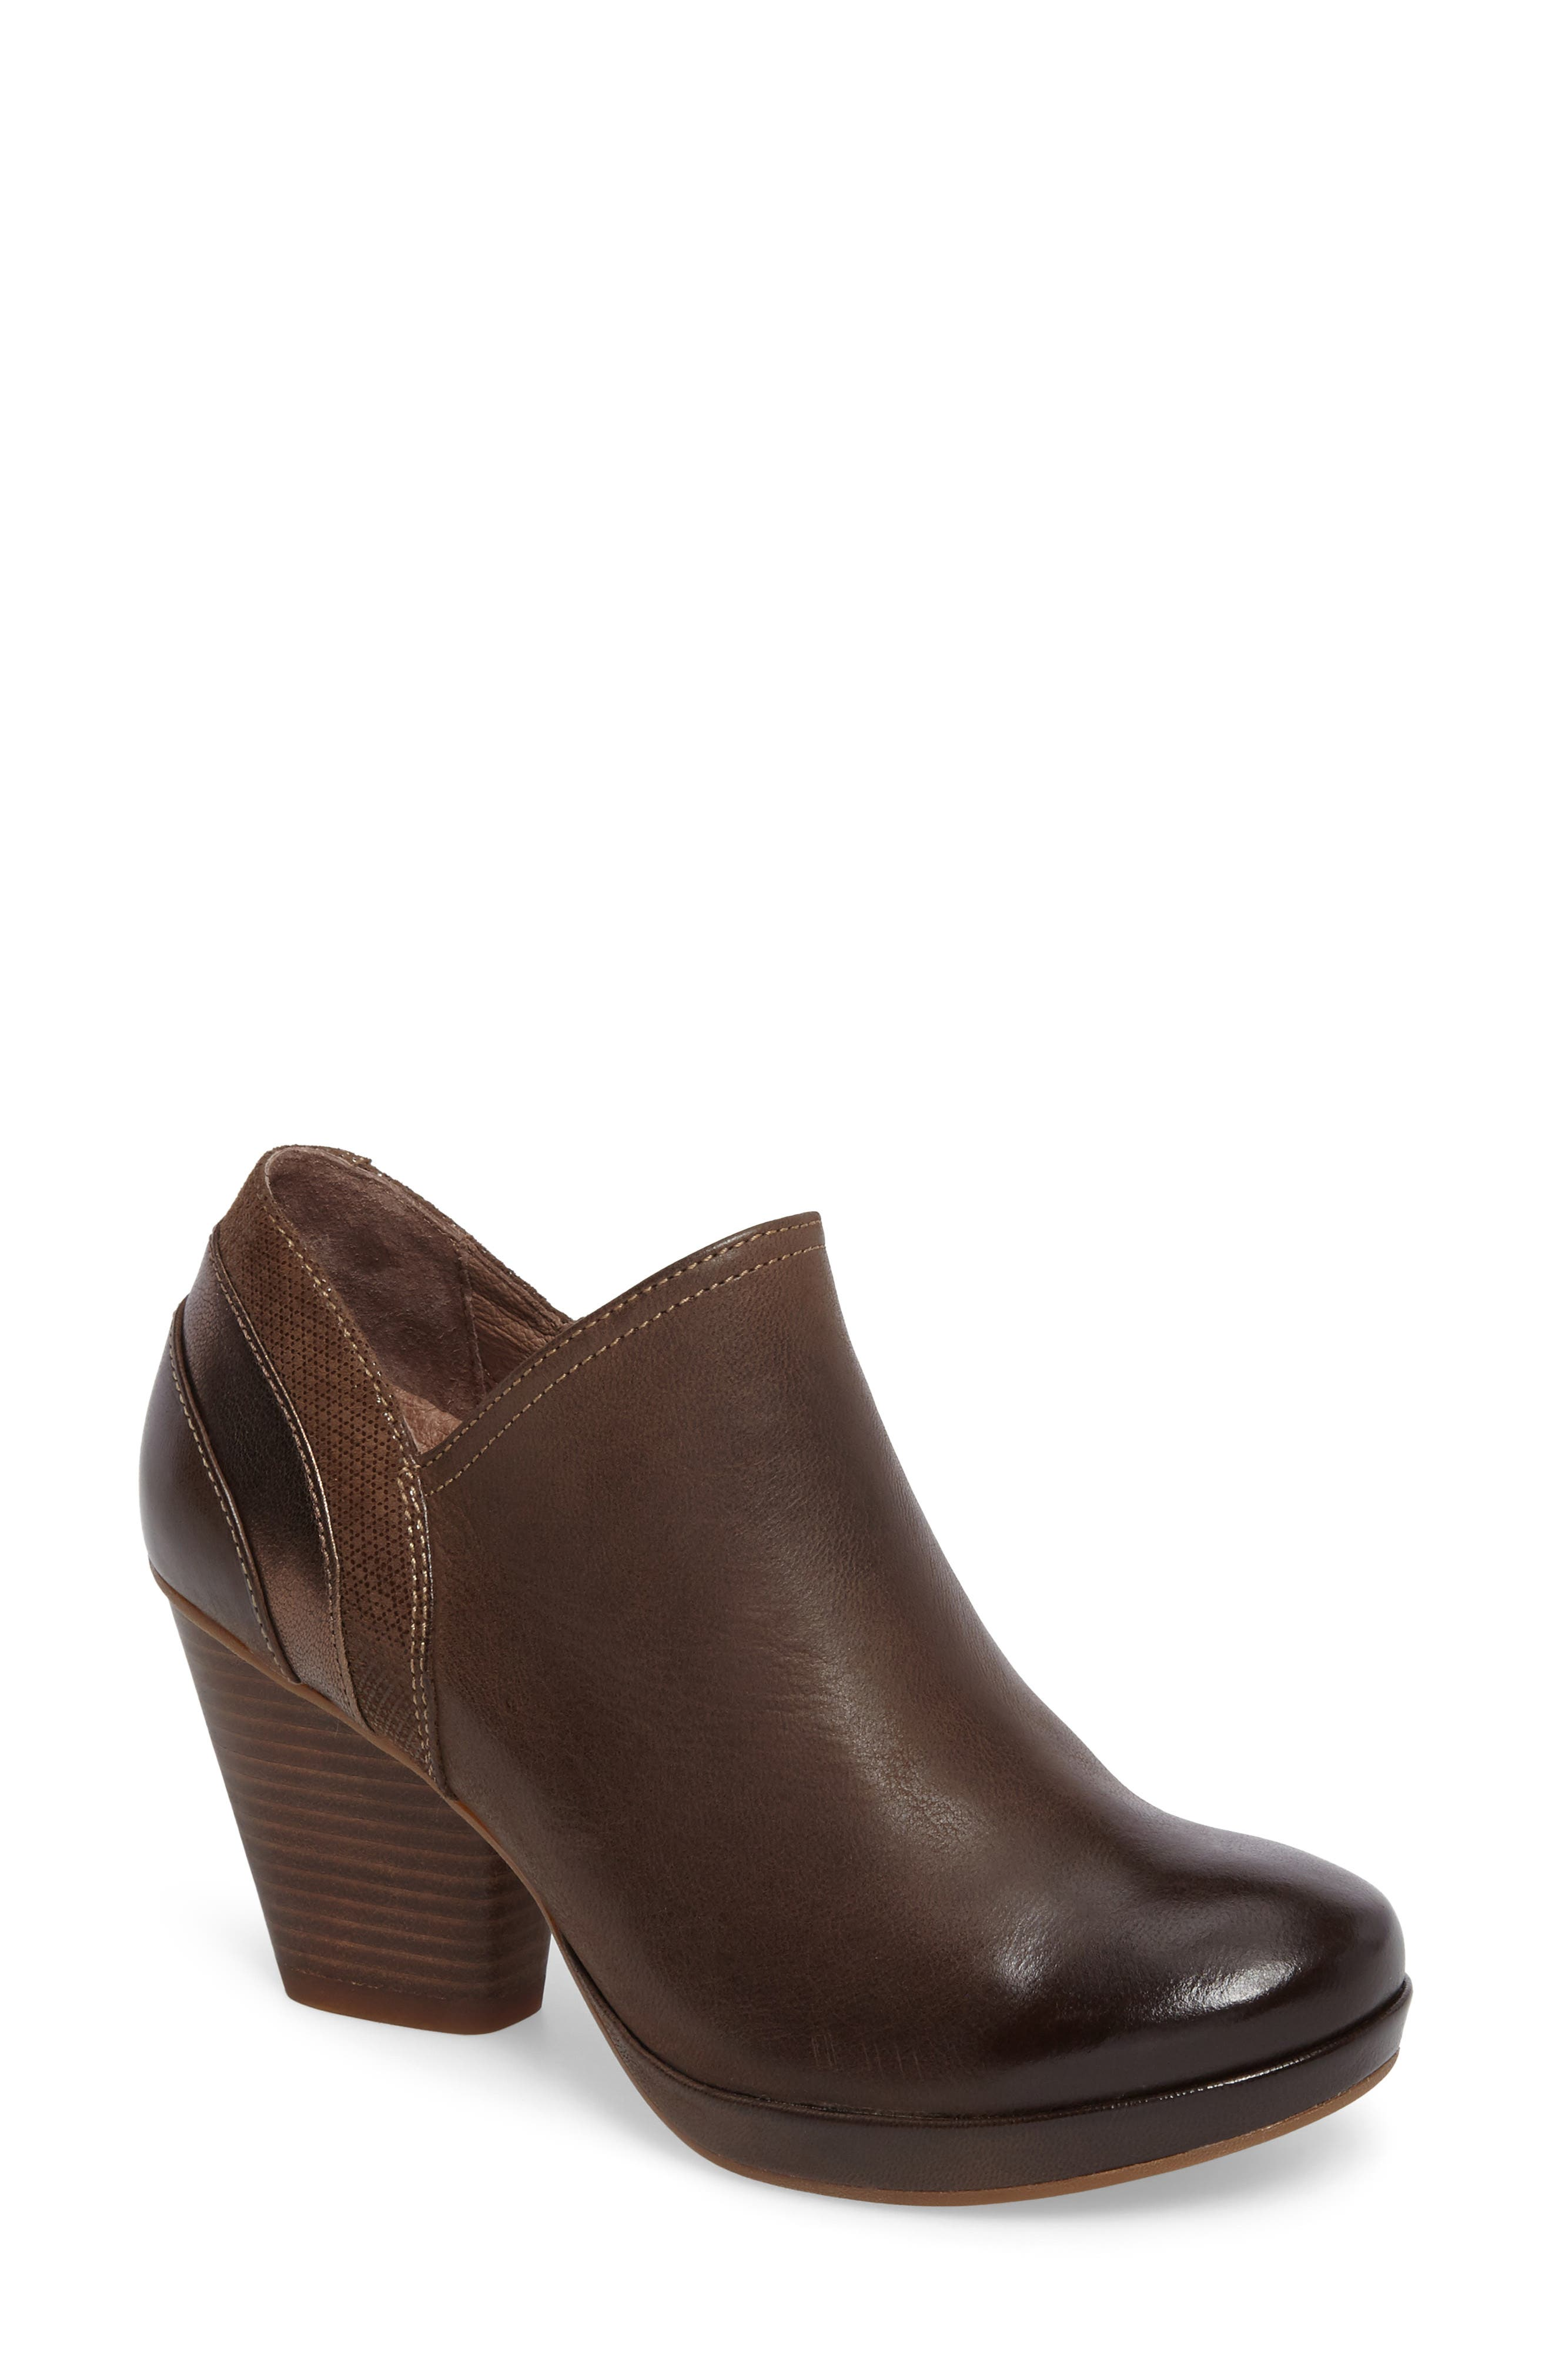 Marcia Bootie,                         Main,                         color, Teak Burinished Leather